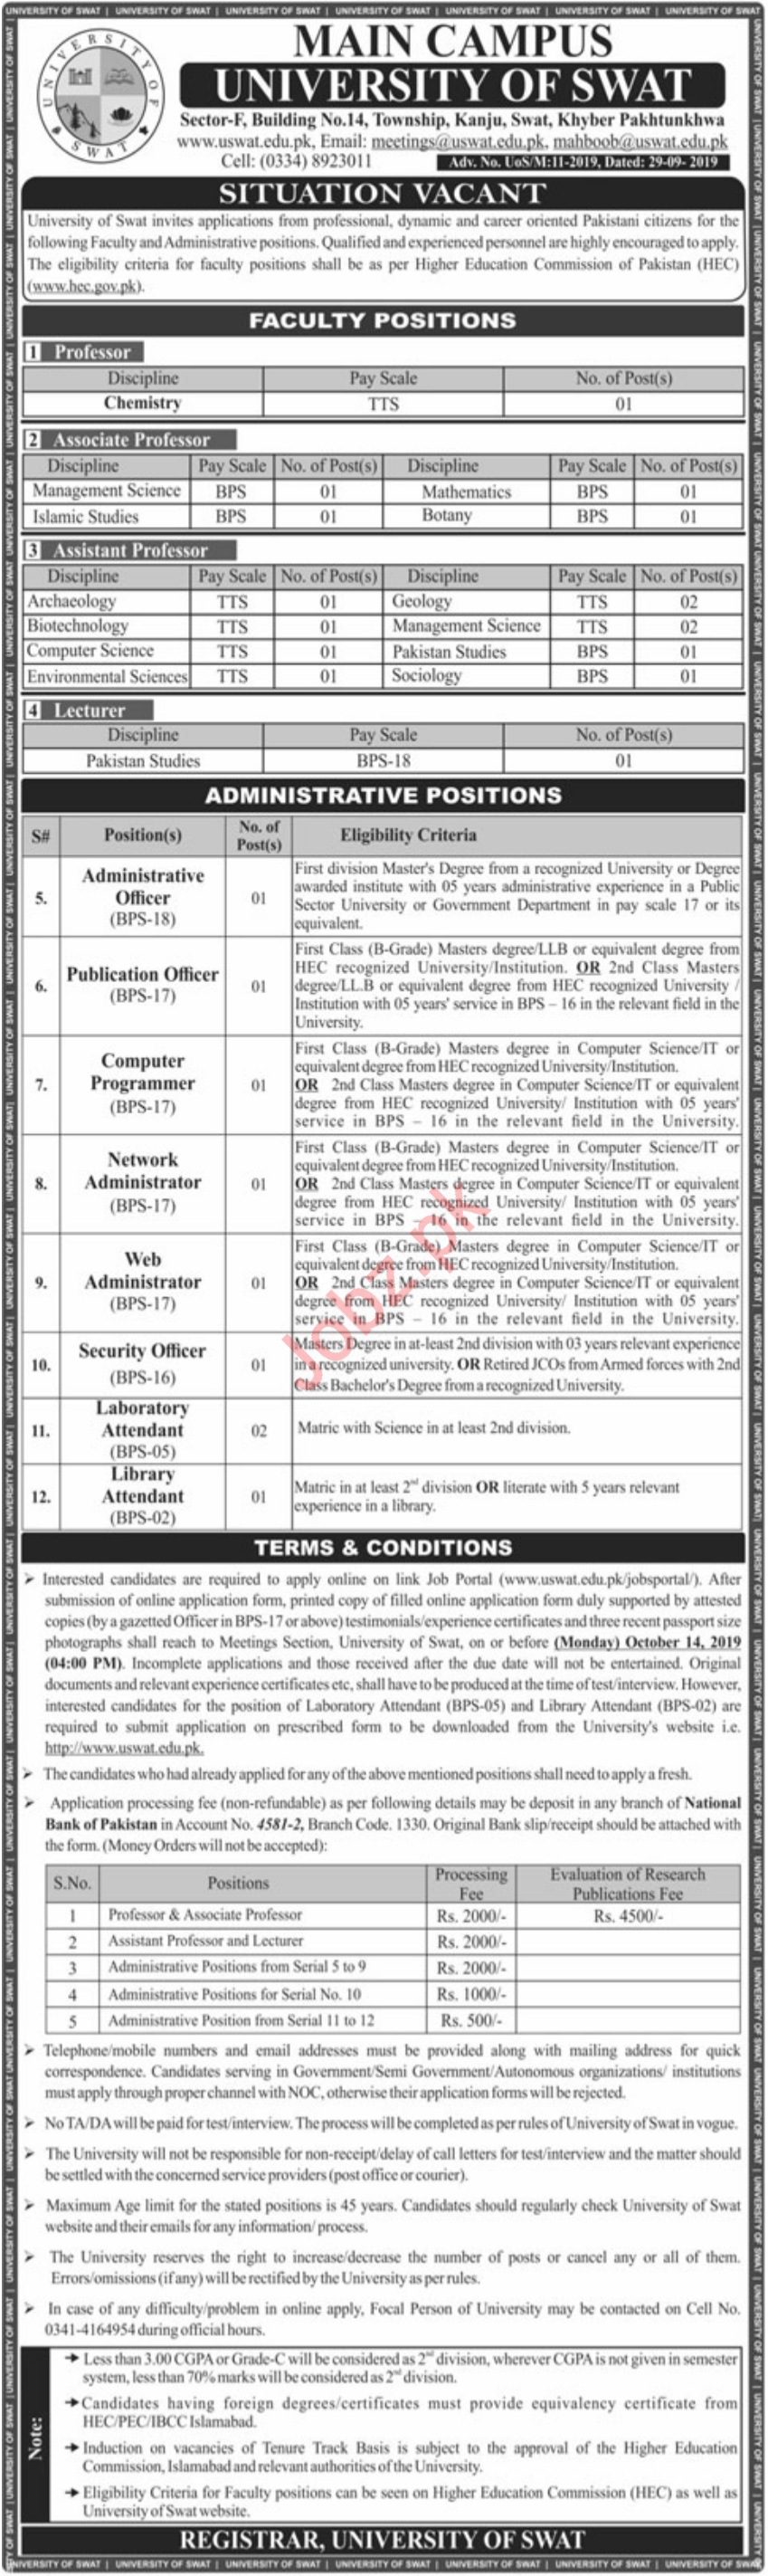 University Of Swat Main Campus Jobs 2019